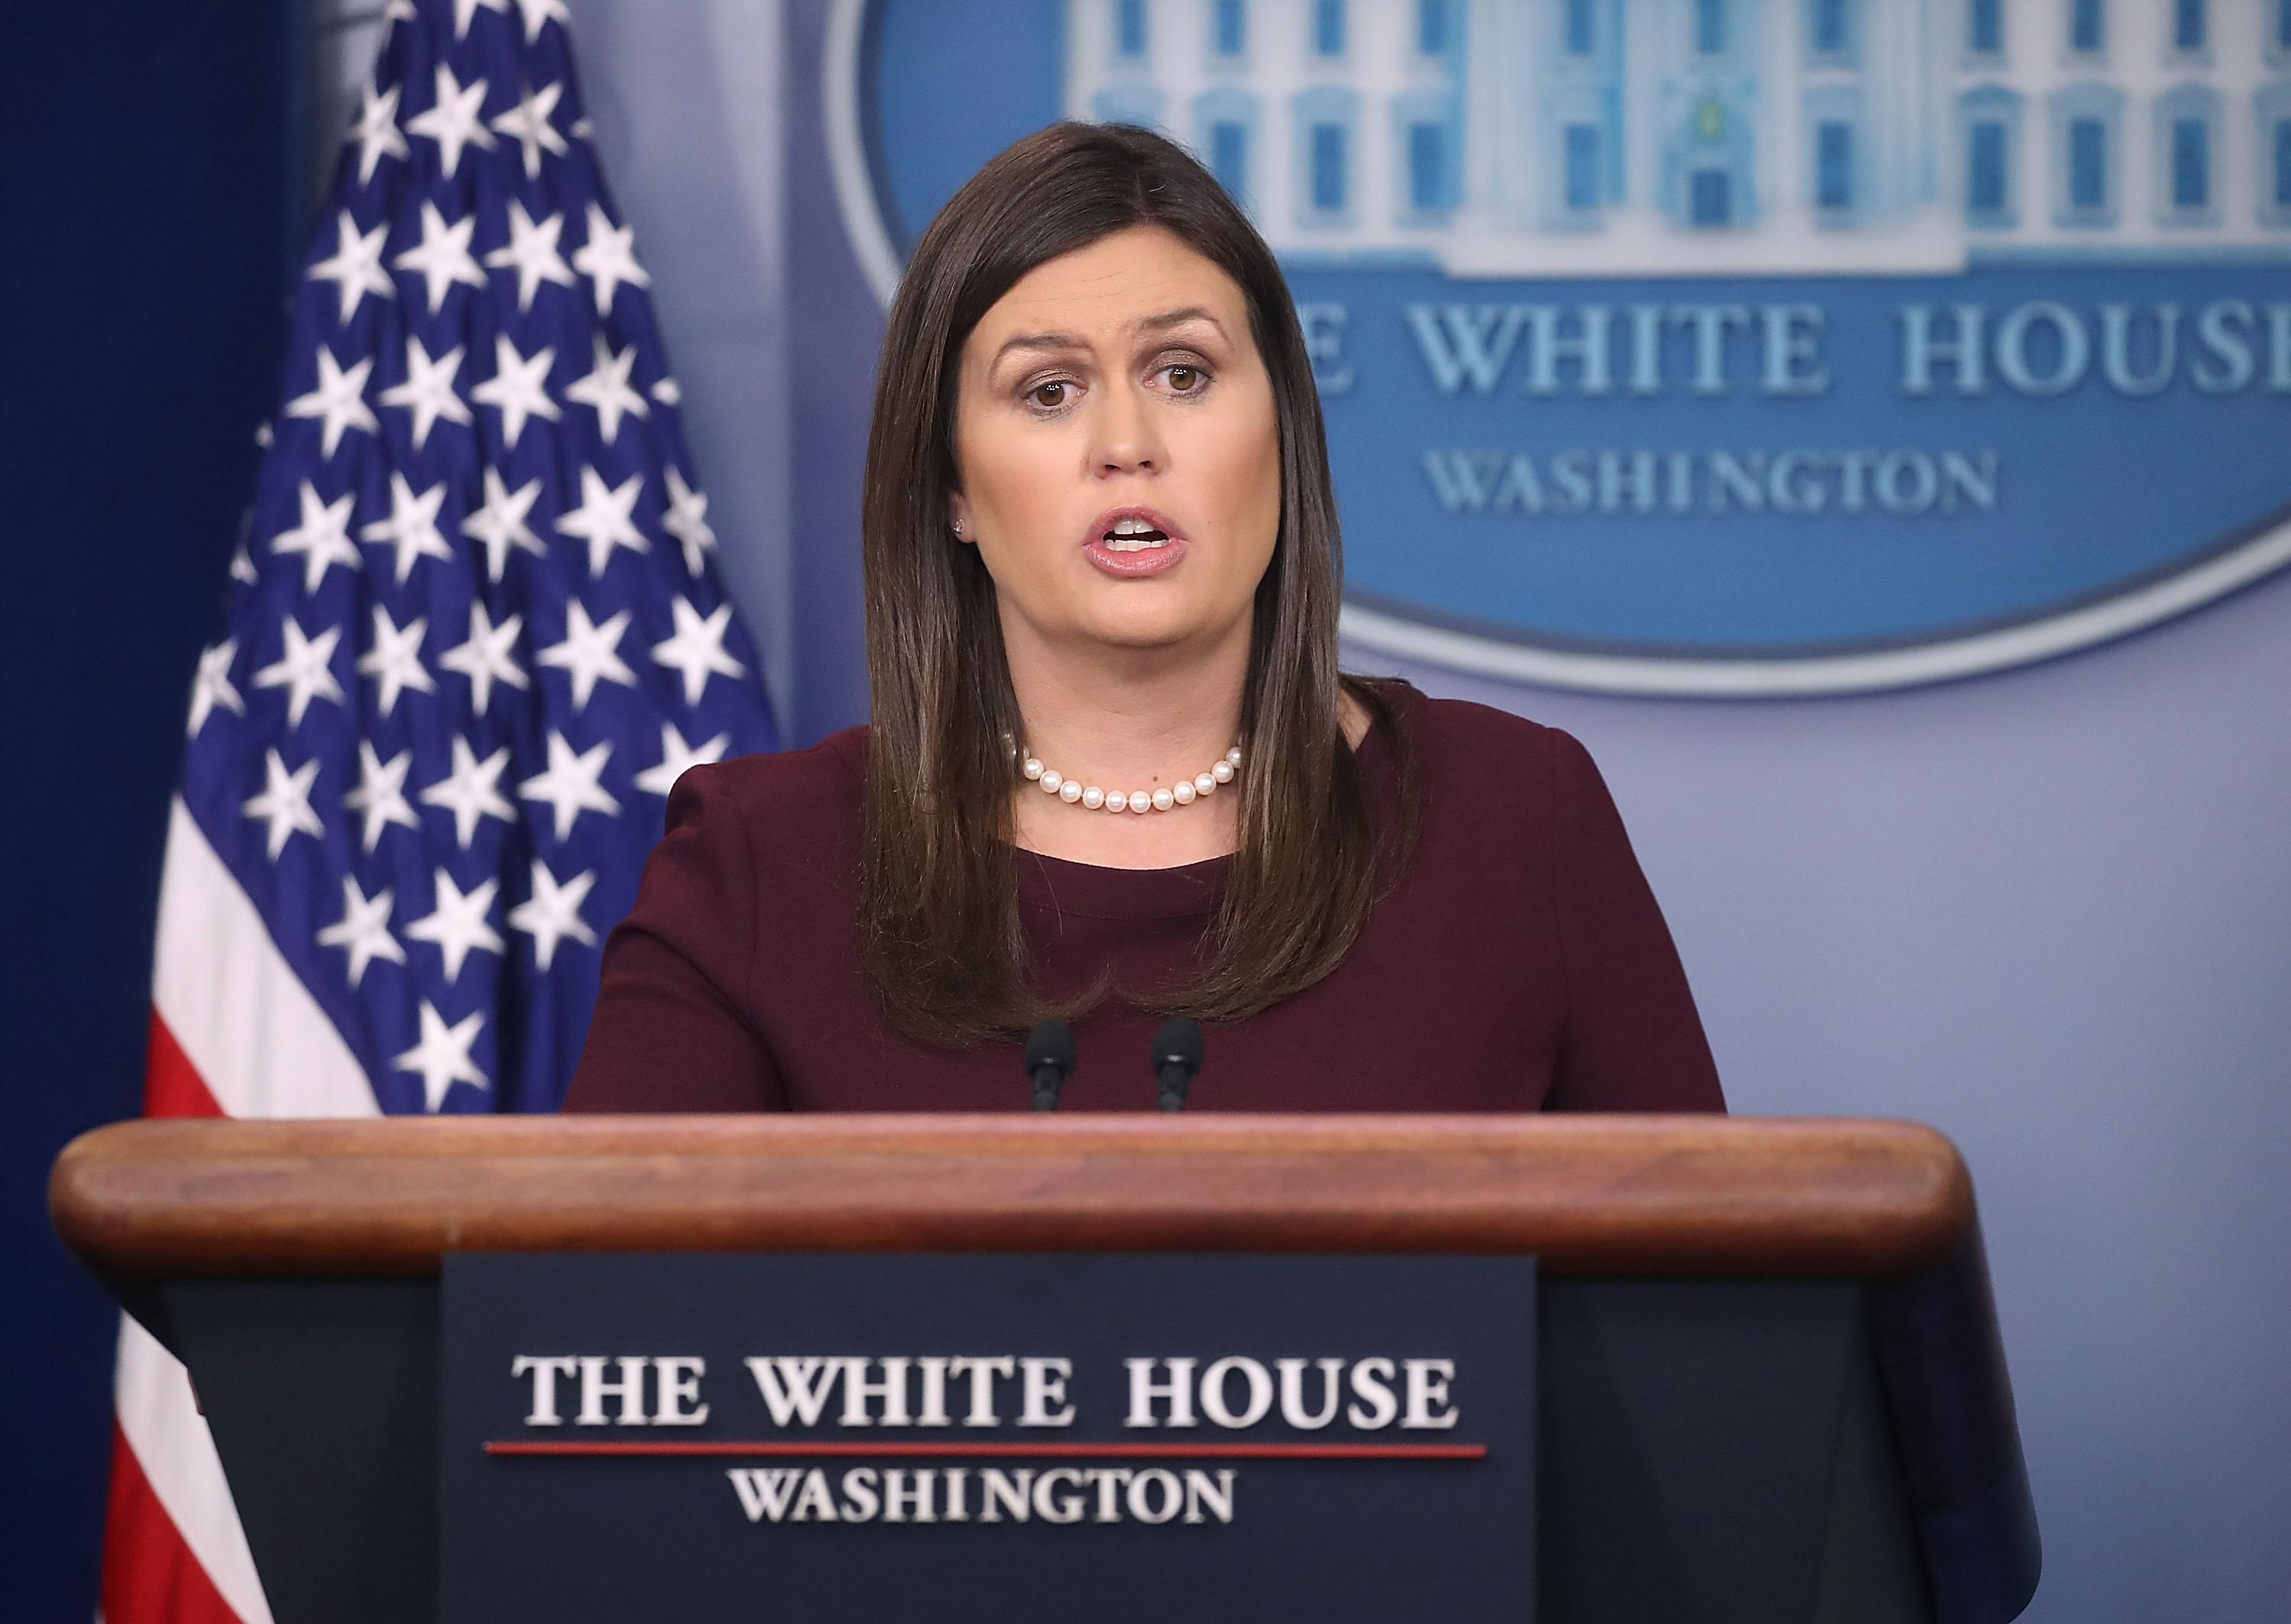 Sarah Sanders answers questions from the press.